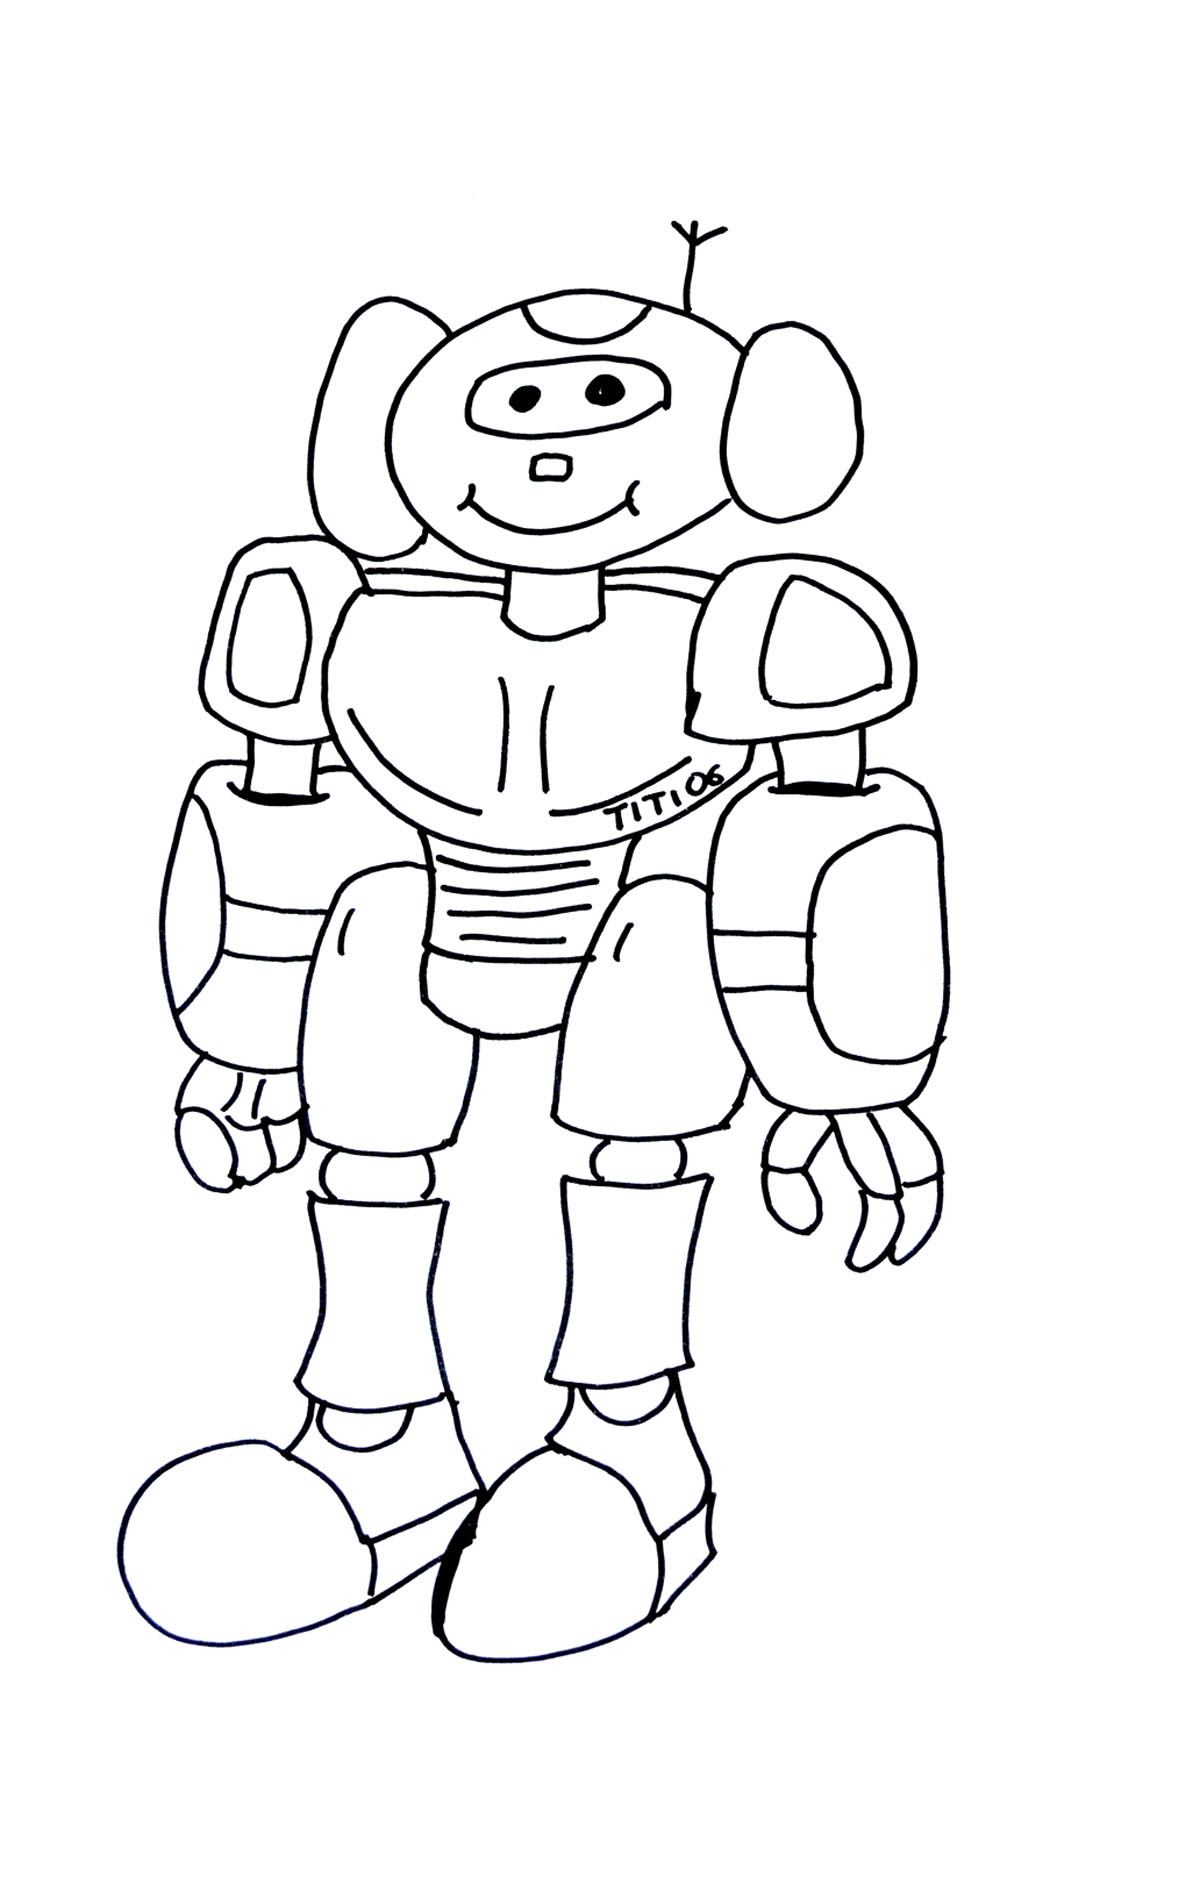 Funny robot - Robots Coloring pages for kids to print & color